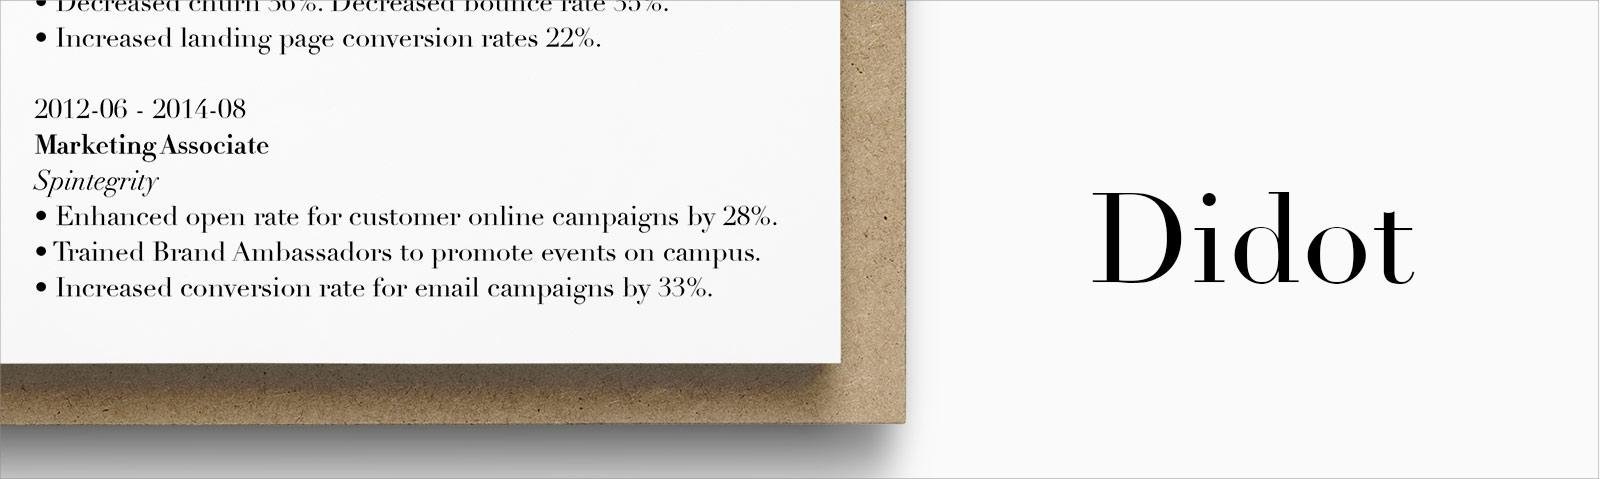 best font for resume size standard professional pairings most common didot textile Resume Most Common Resume Font